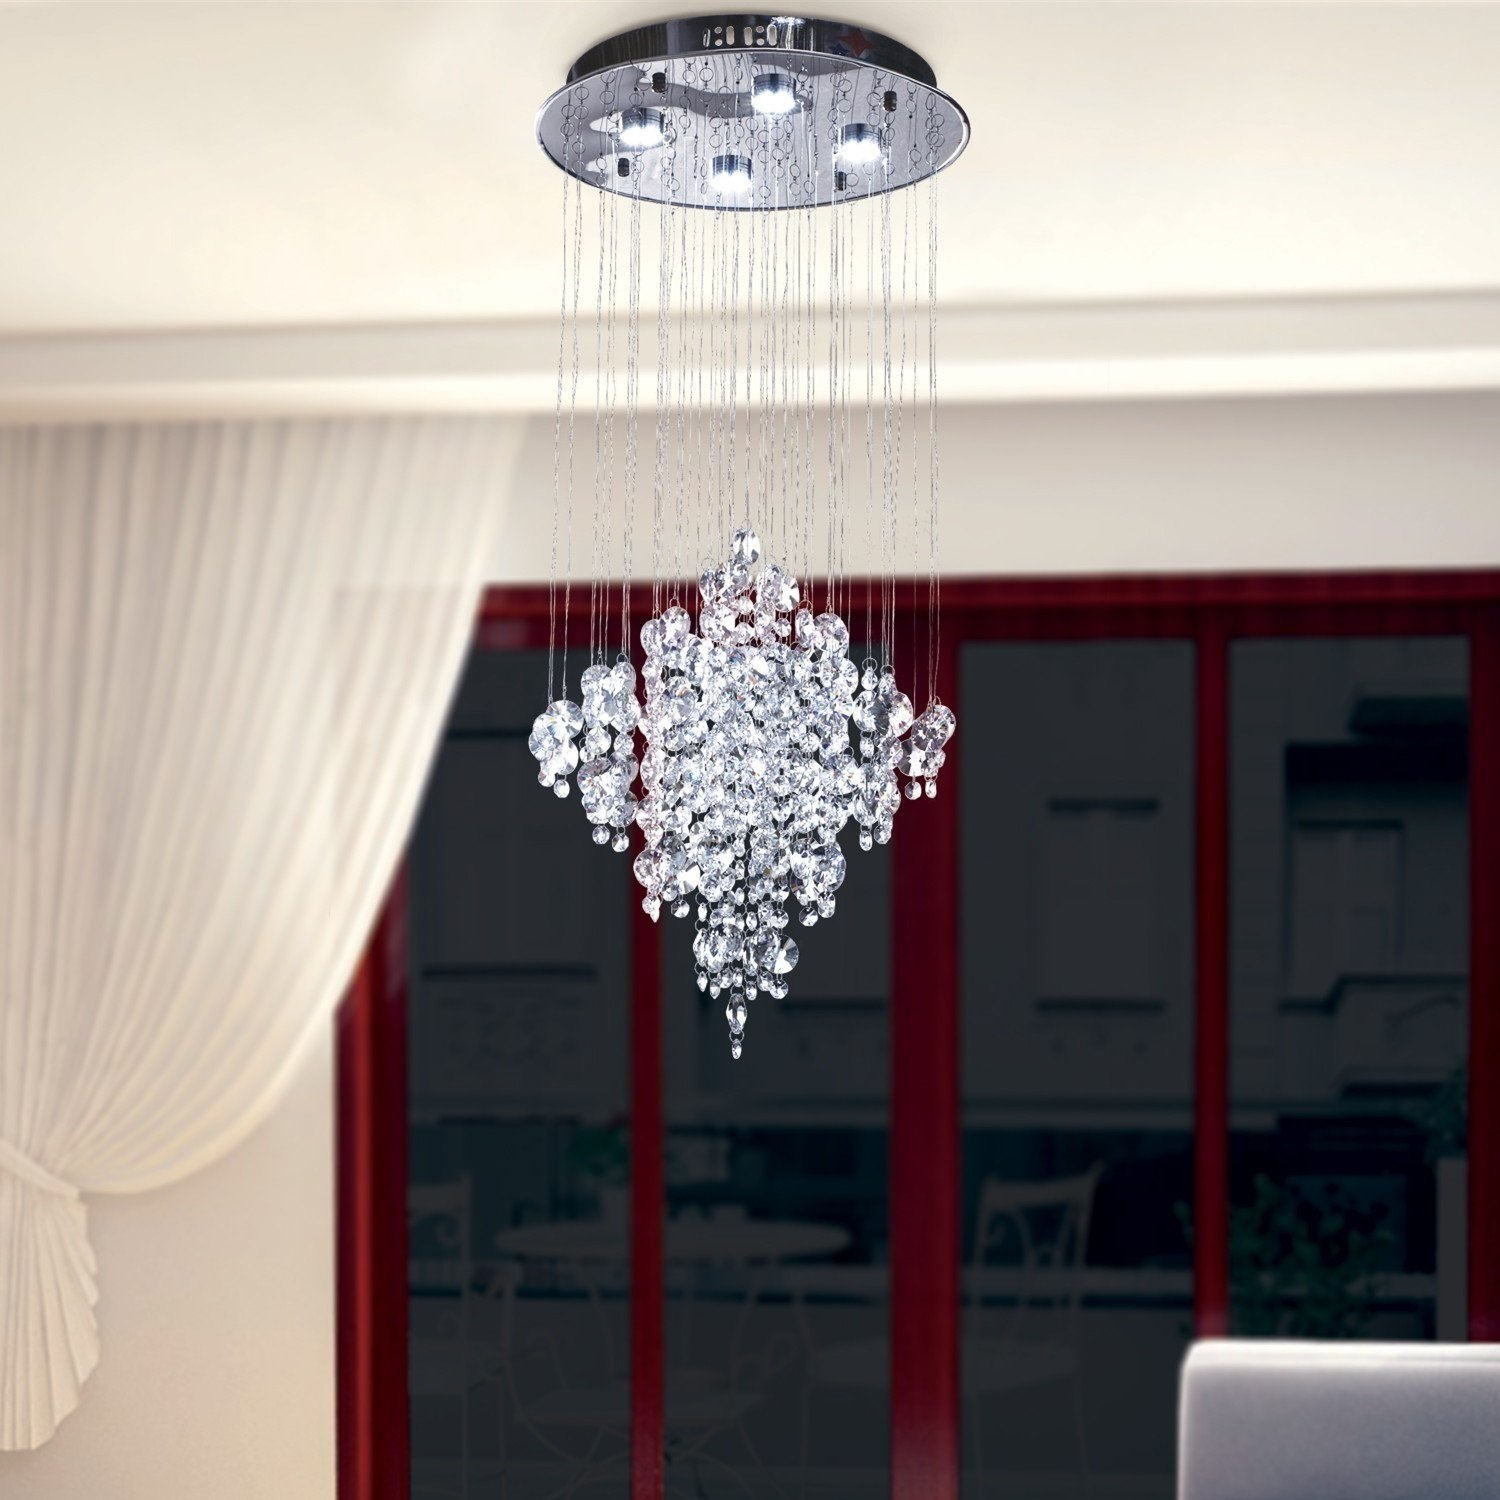 OOFAY LIGHT LED 4 3W Contemporary fashion K9 Crystal Modern